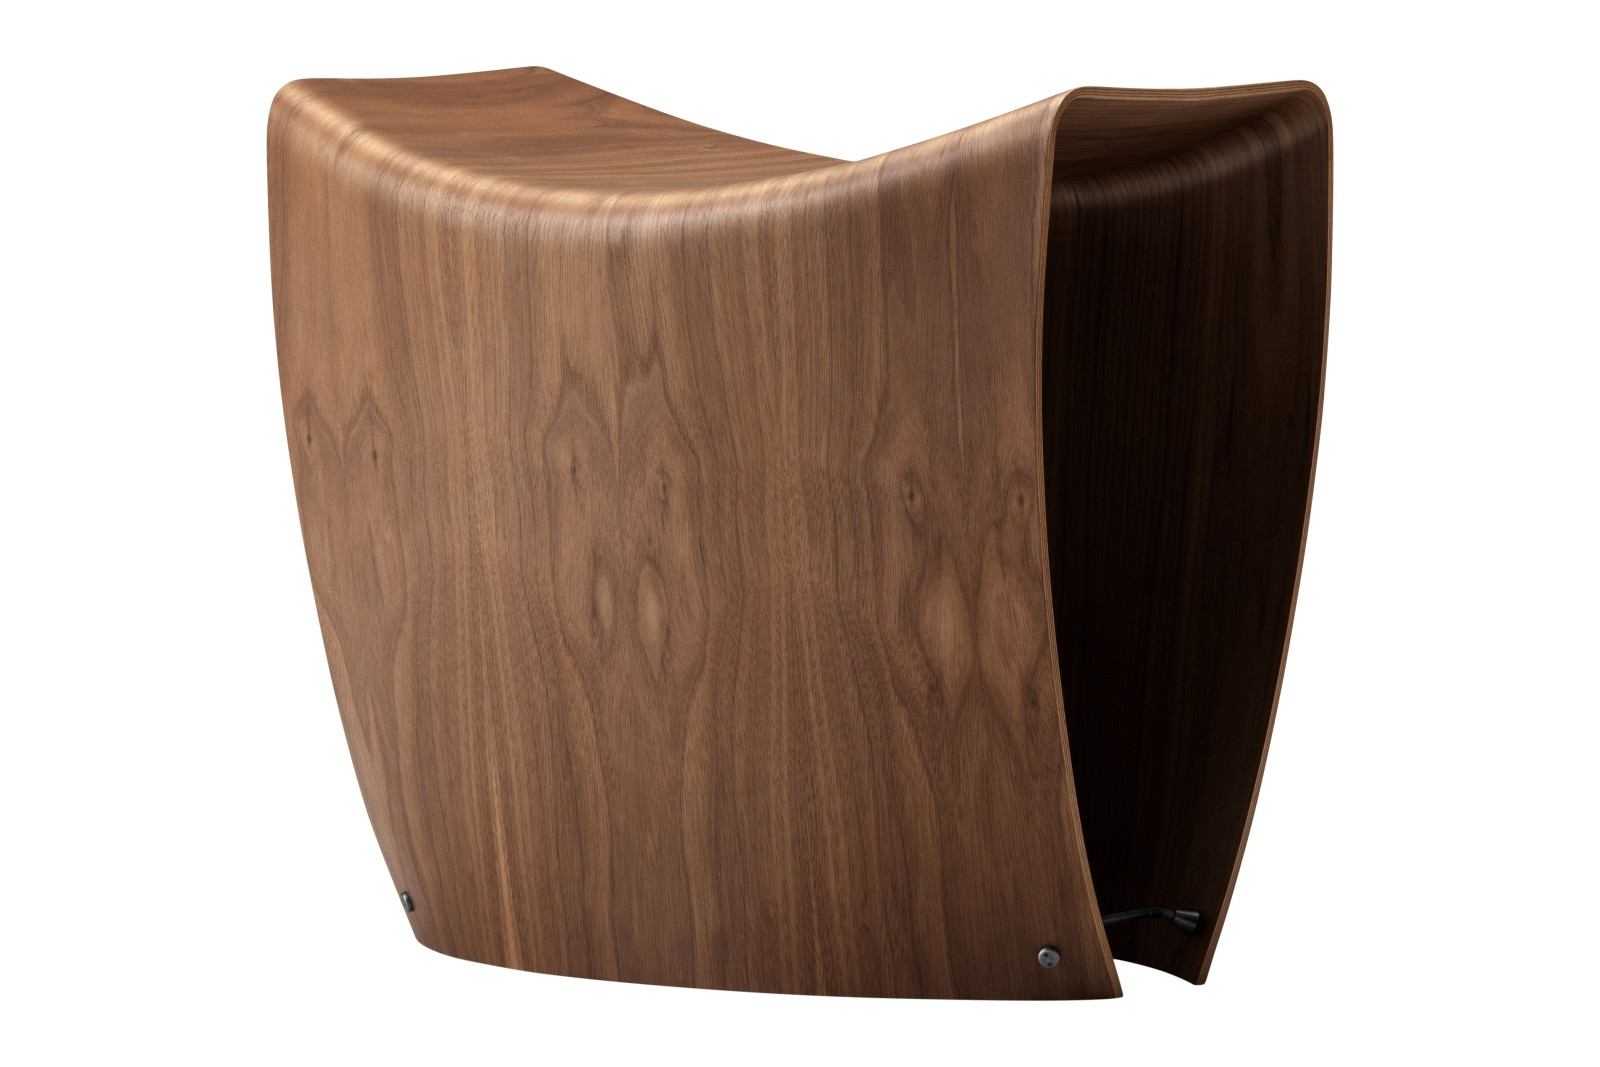 Gallery Walnut Lacquered